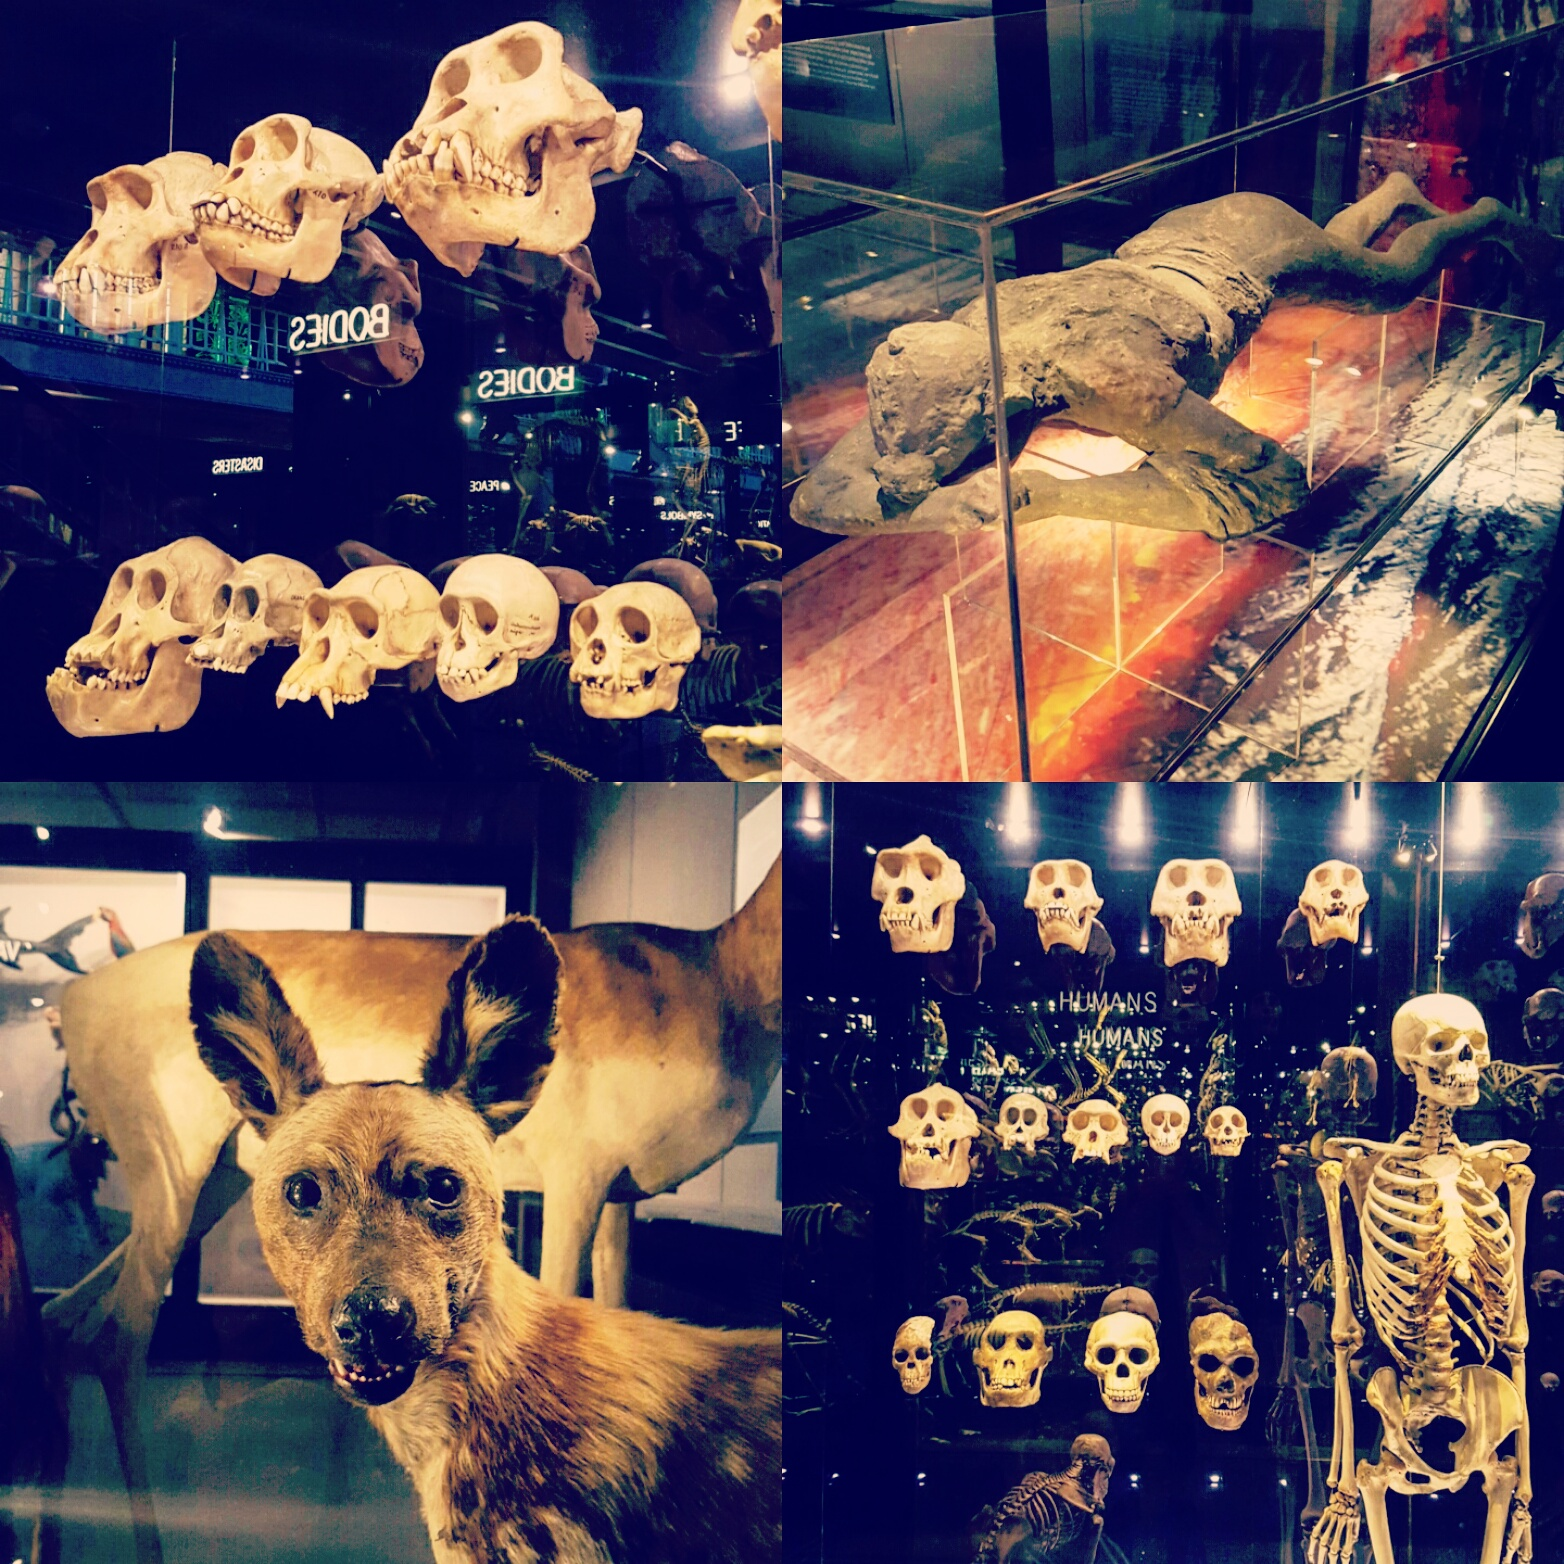 Top Left: Ape, monkey and human skulls.     Top Right: A body from the disaster of Pompeii.  Bottom Left: Collection of Mammals.              Bottom Right: Ape, monkey and human bones.